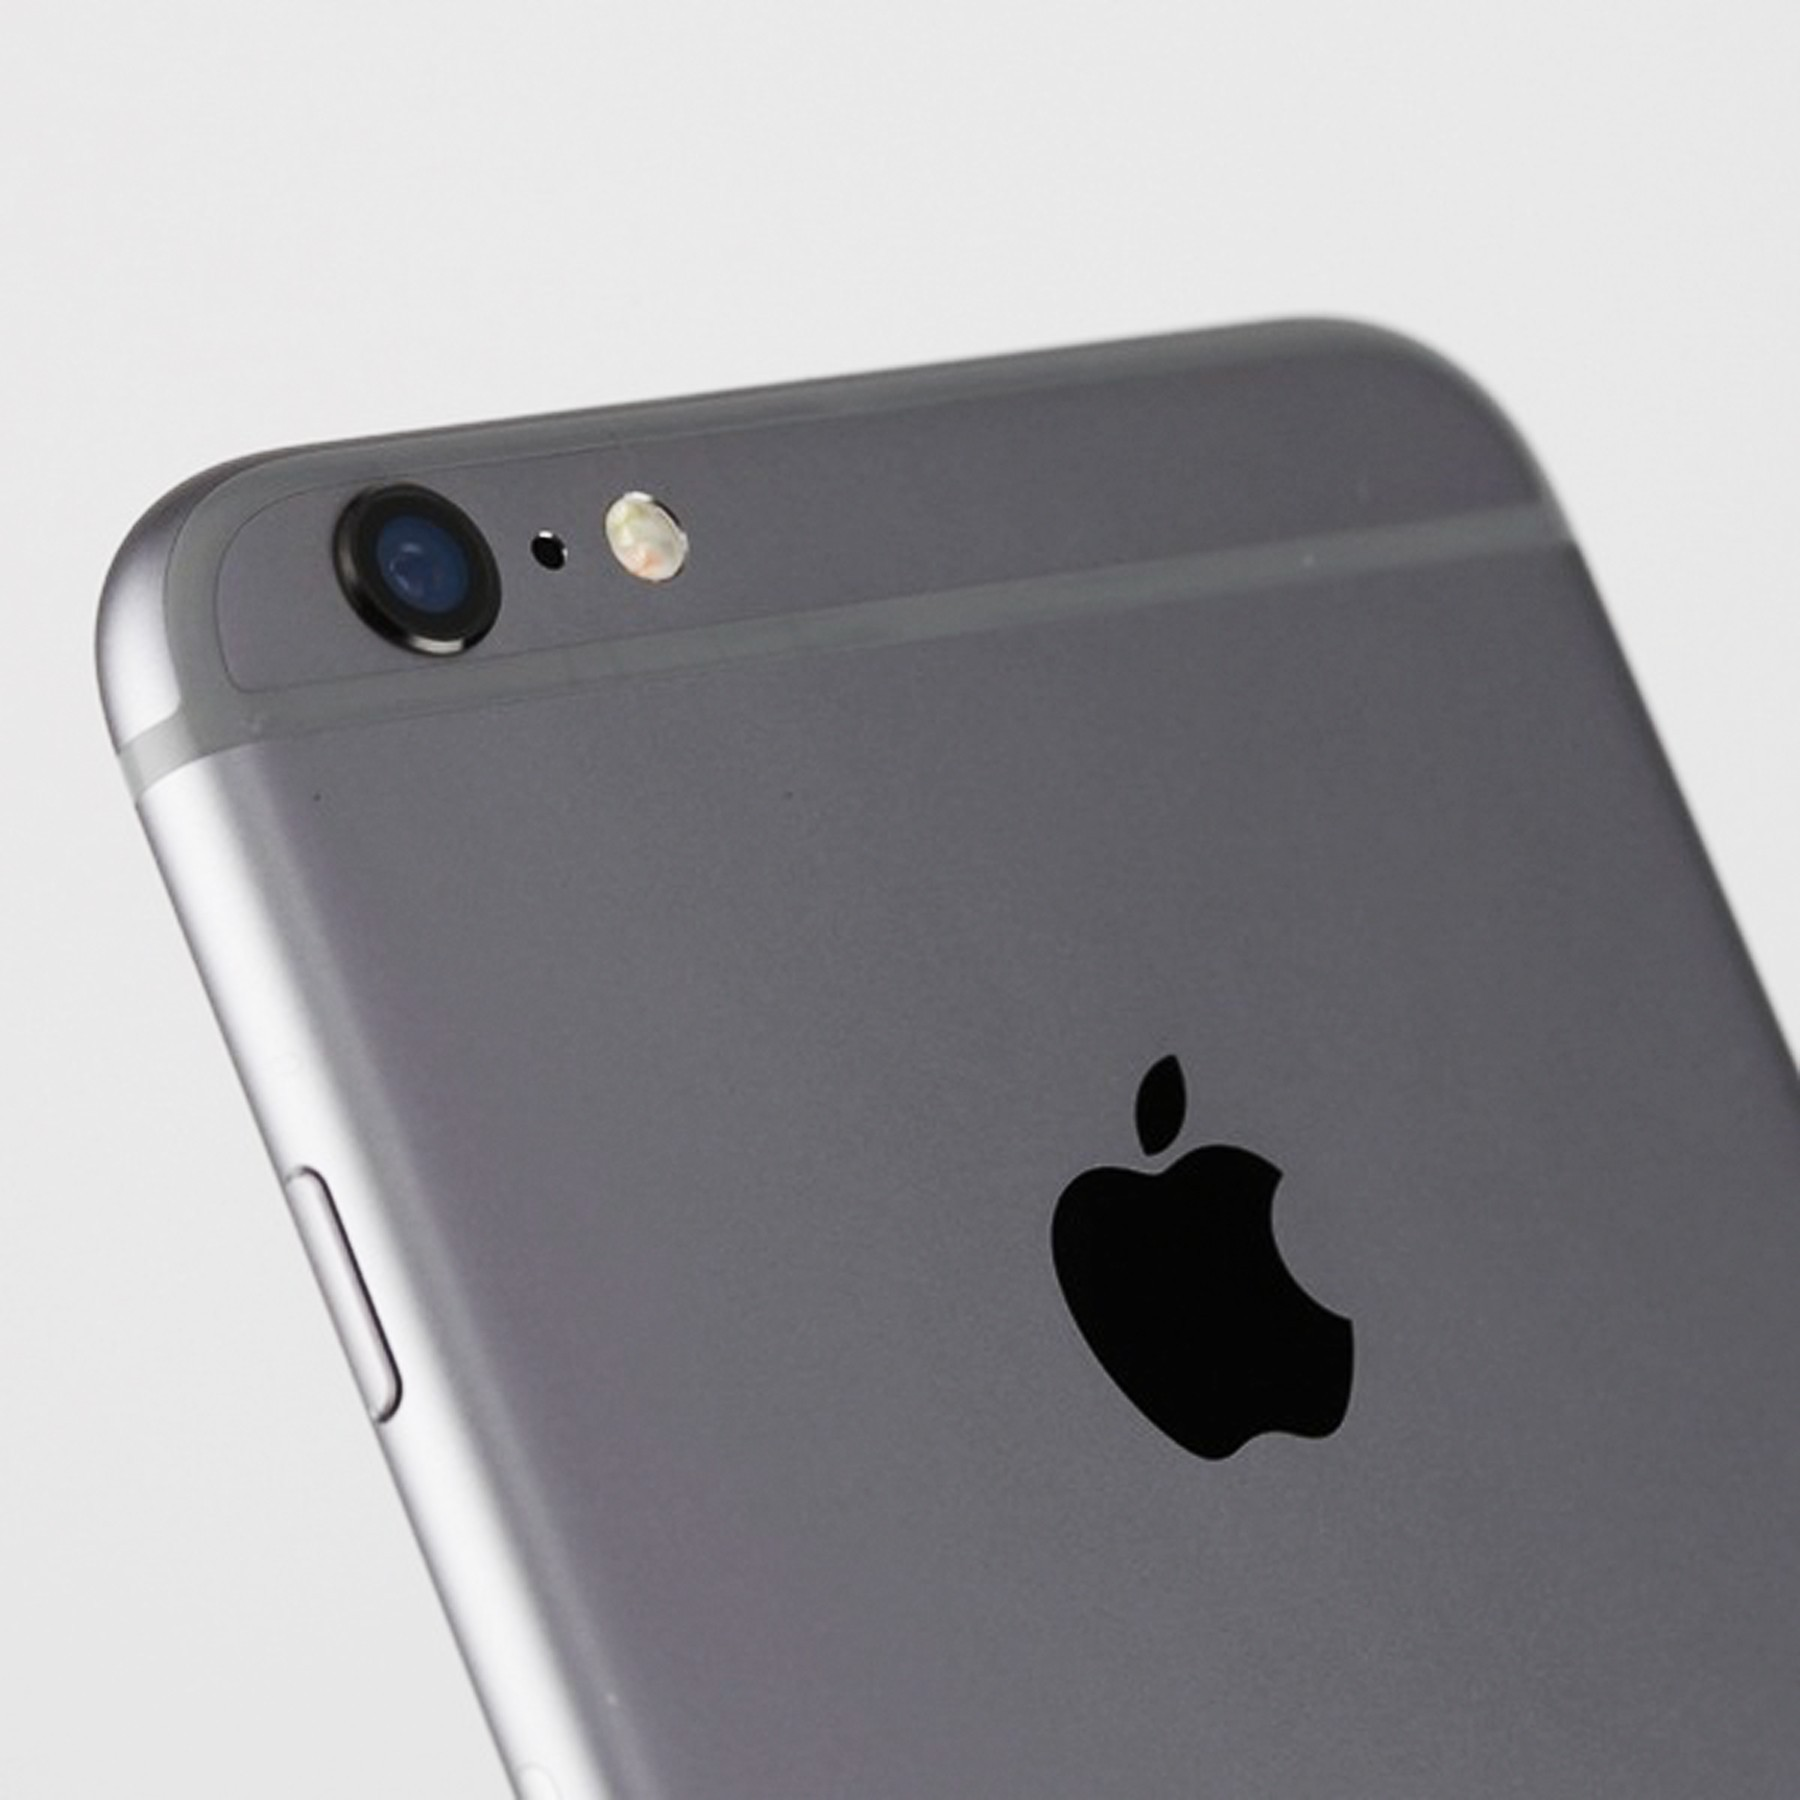 iPhone 6 Plus 64G Space Gray Ảnh số 38368055